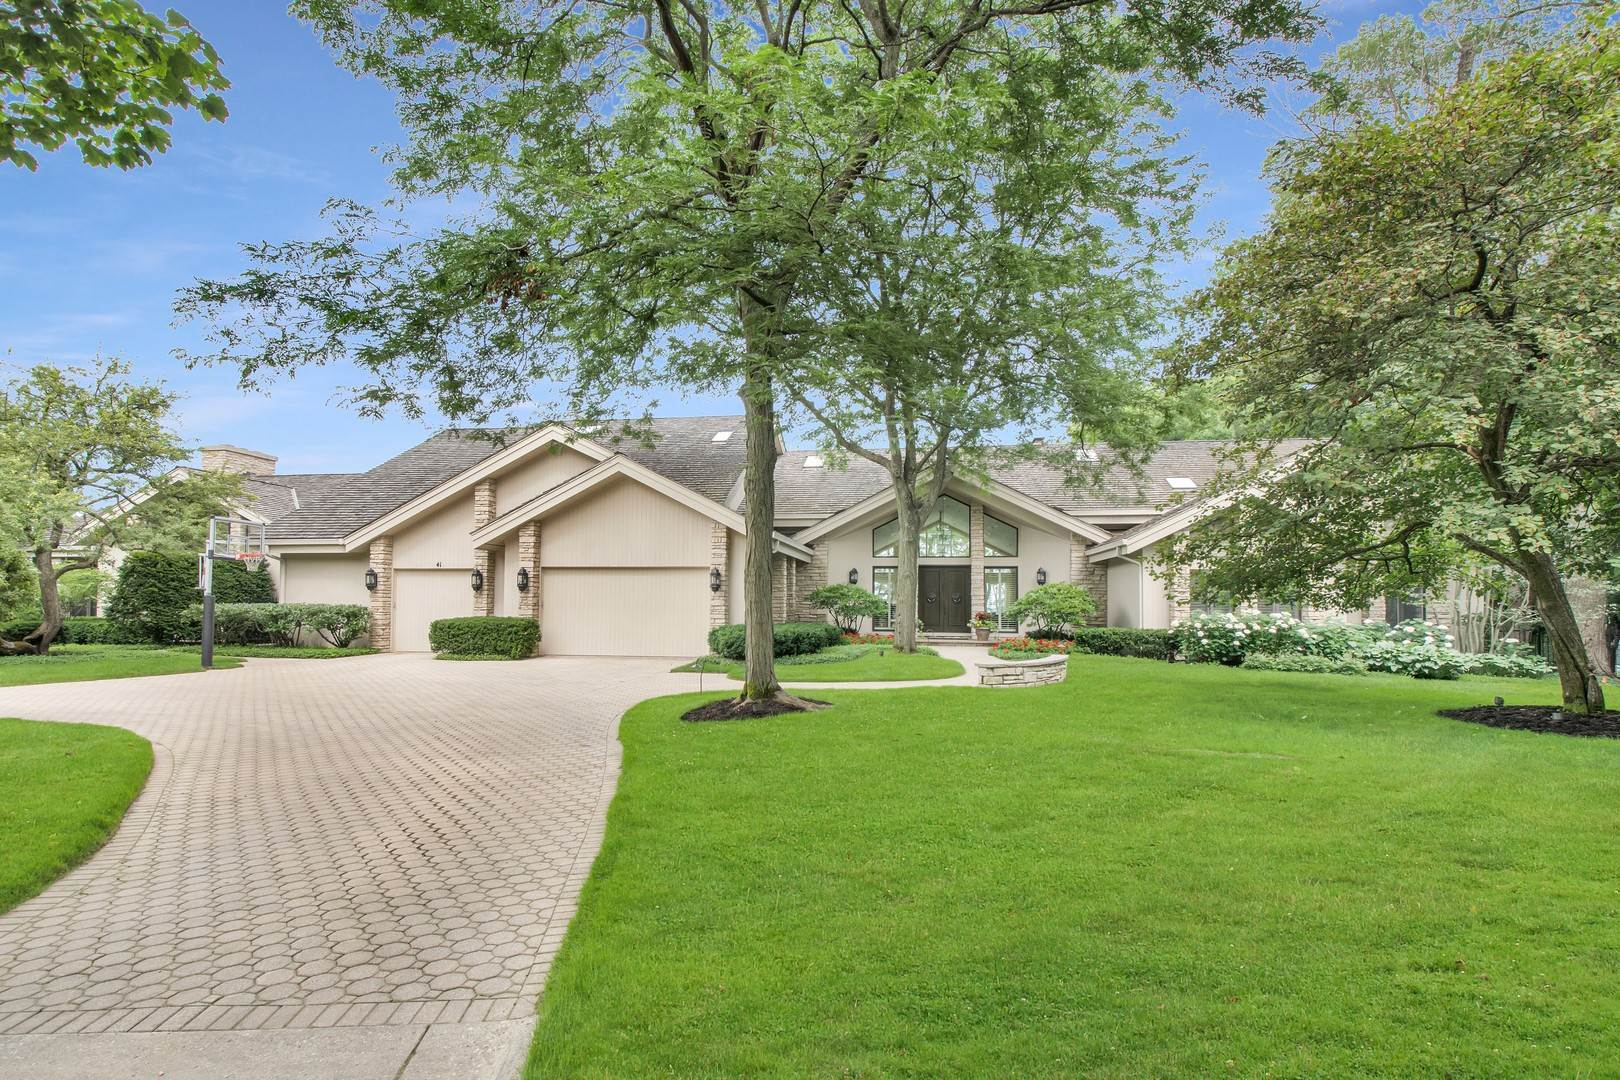 Single Family Homes for Sale at 41 S Deere Park Drive Highland Park, Illinois 60035 United States